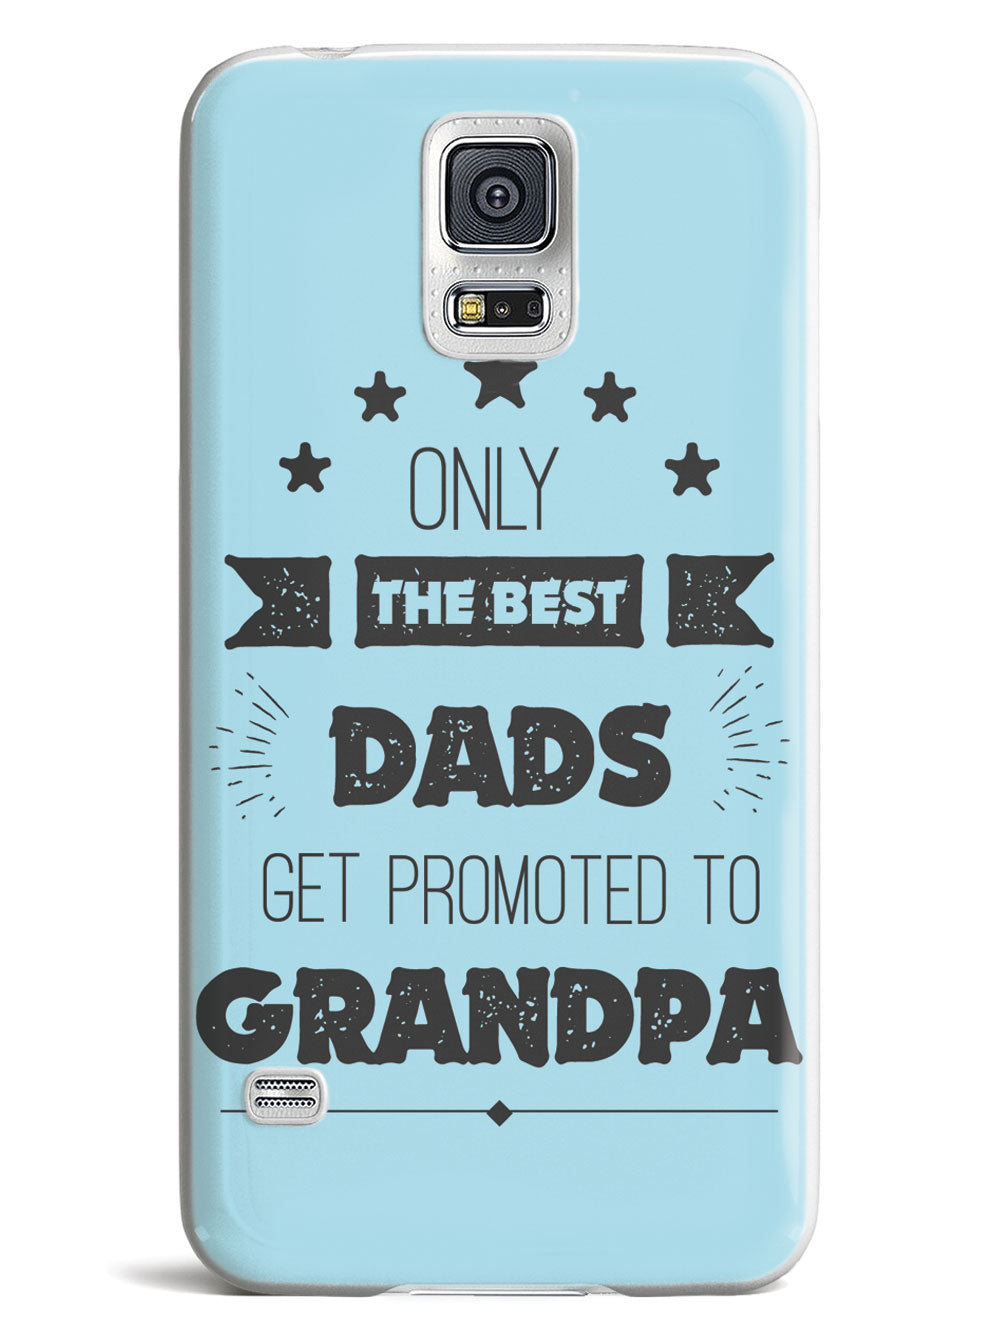 Only The Best Dads - Grandpa - White Case